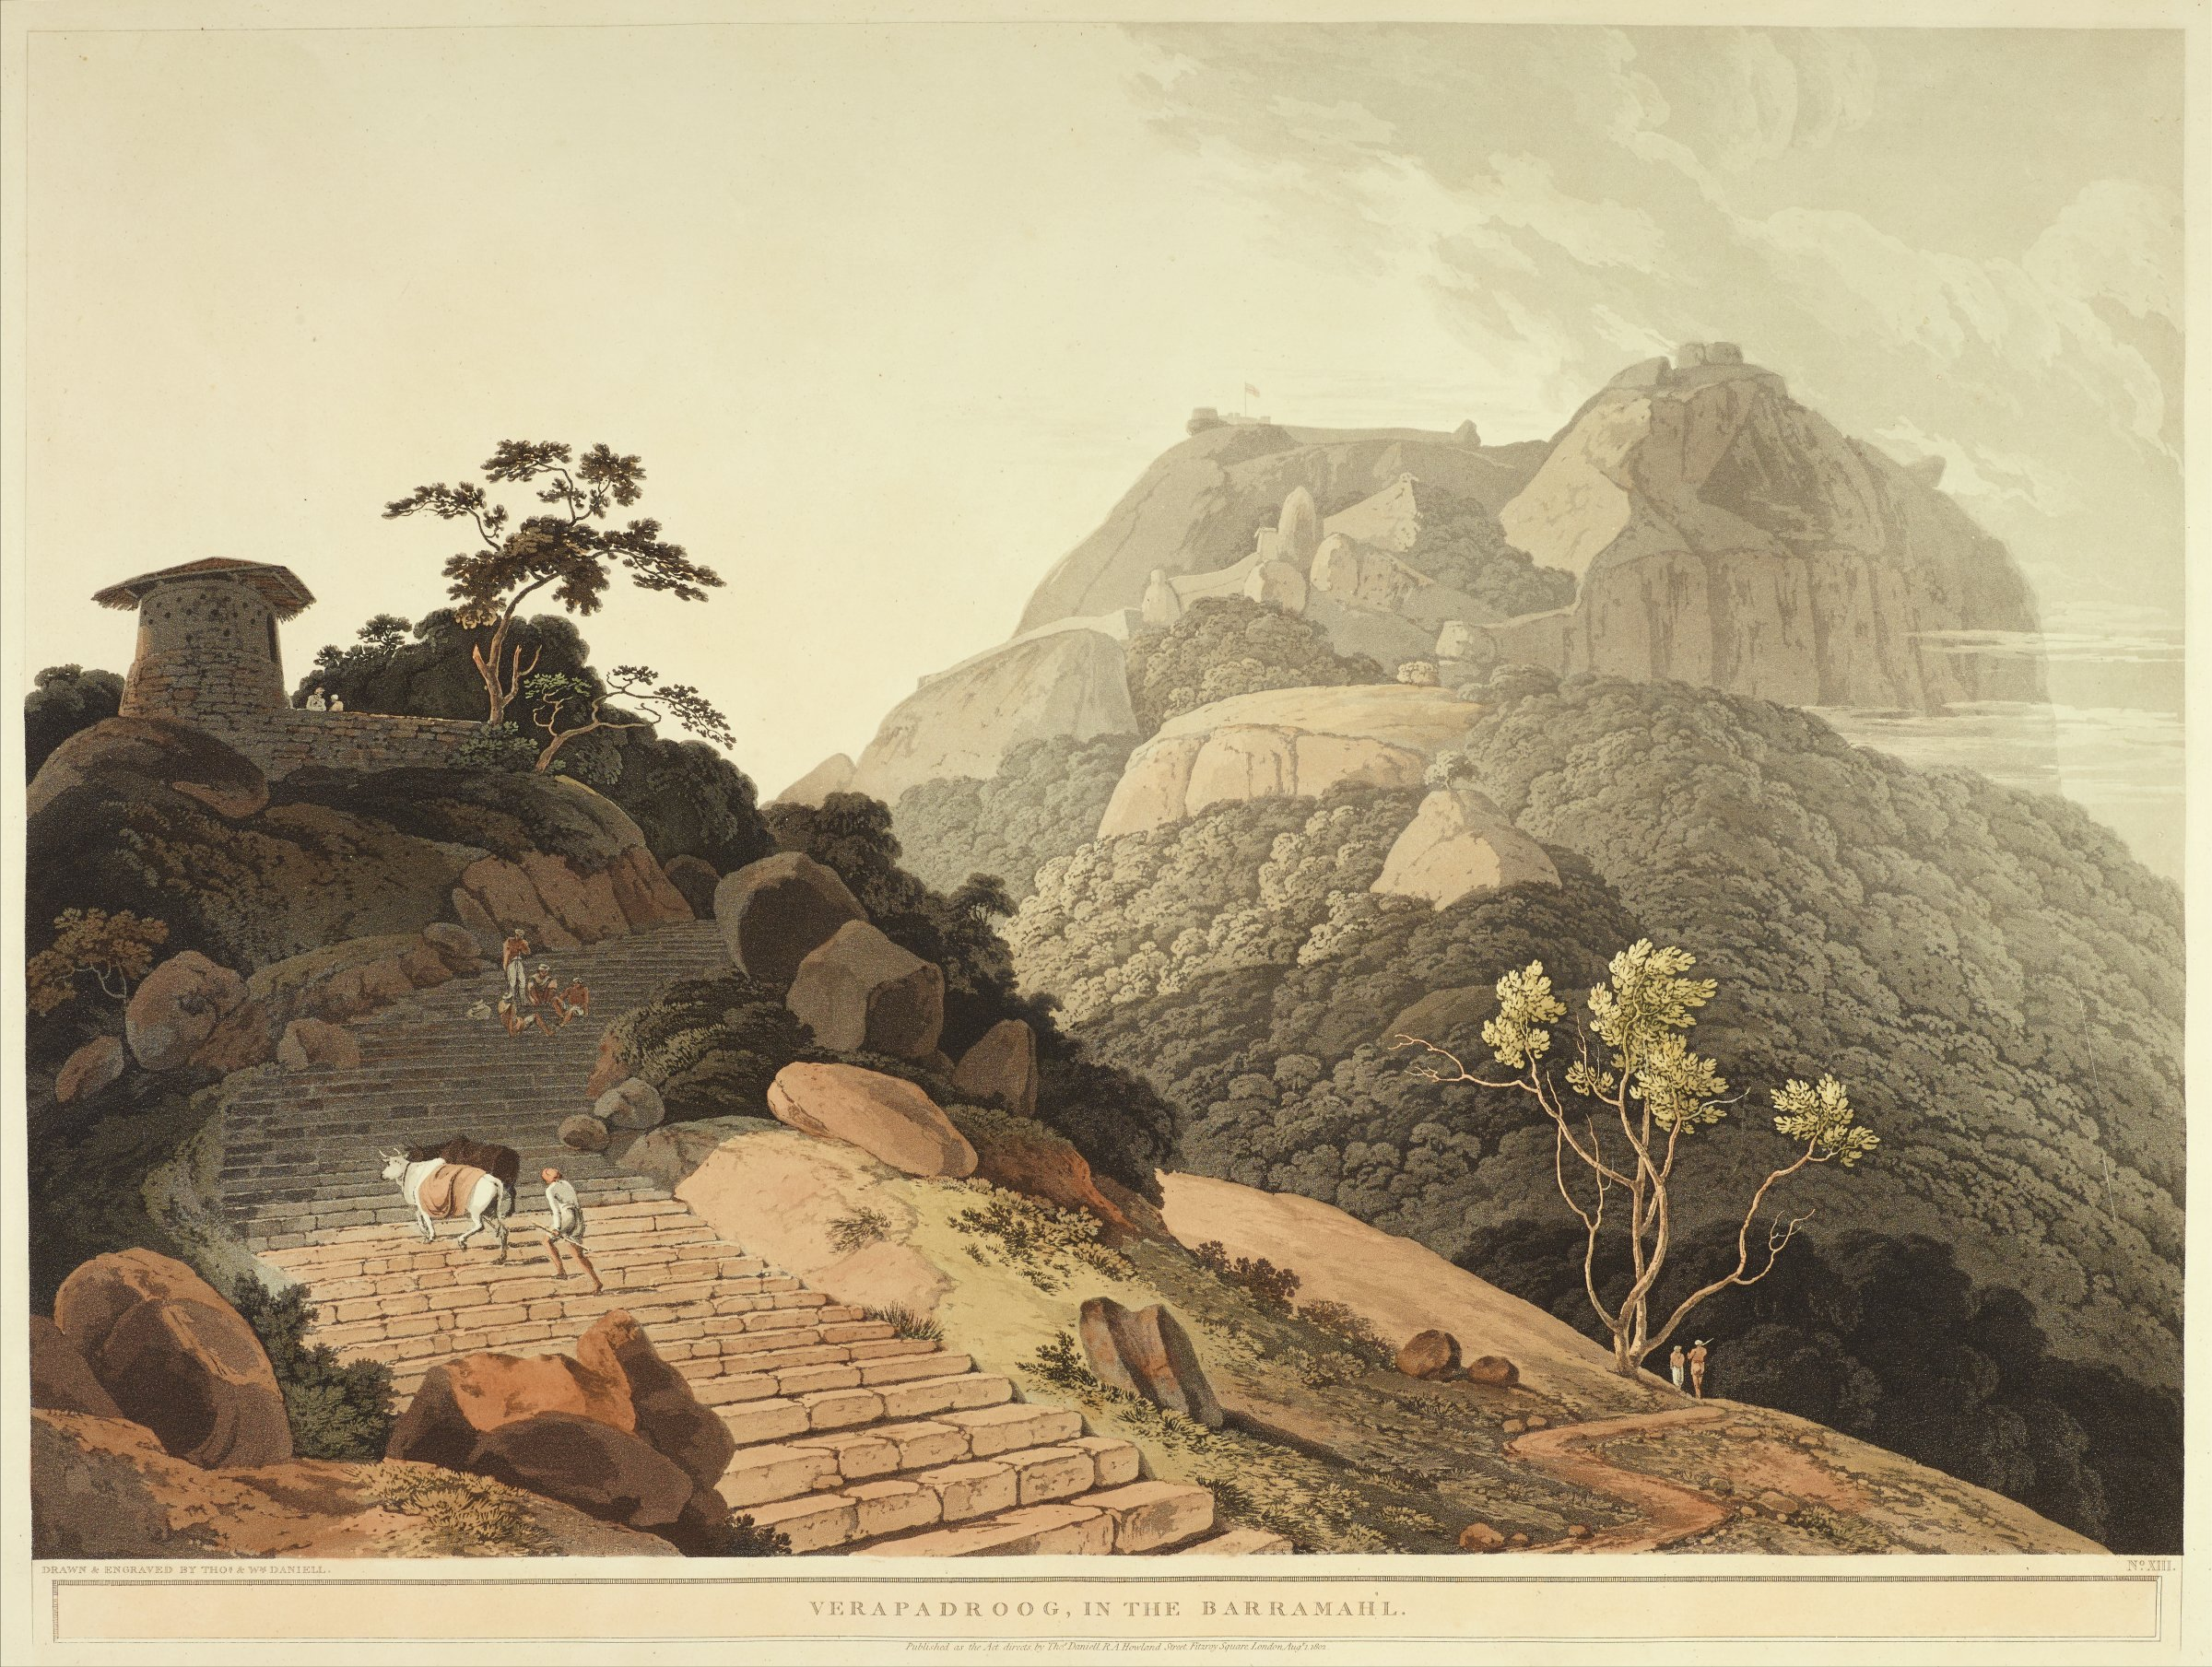 In a mountainous landscape, stone stairs rise along the lower left of the composition. A figure walks two cows up the stairs, and four figures gather together higher up the stairs in the shade.